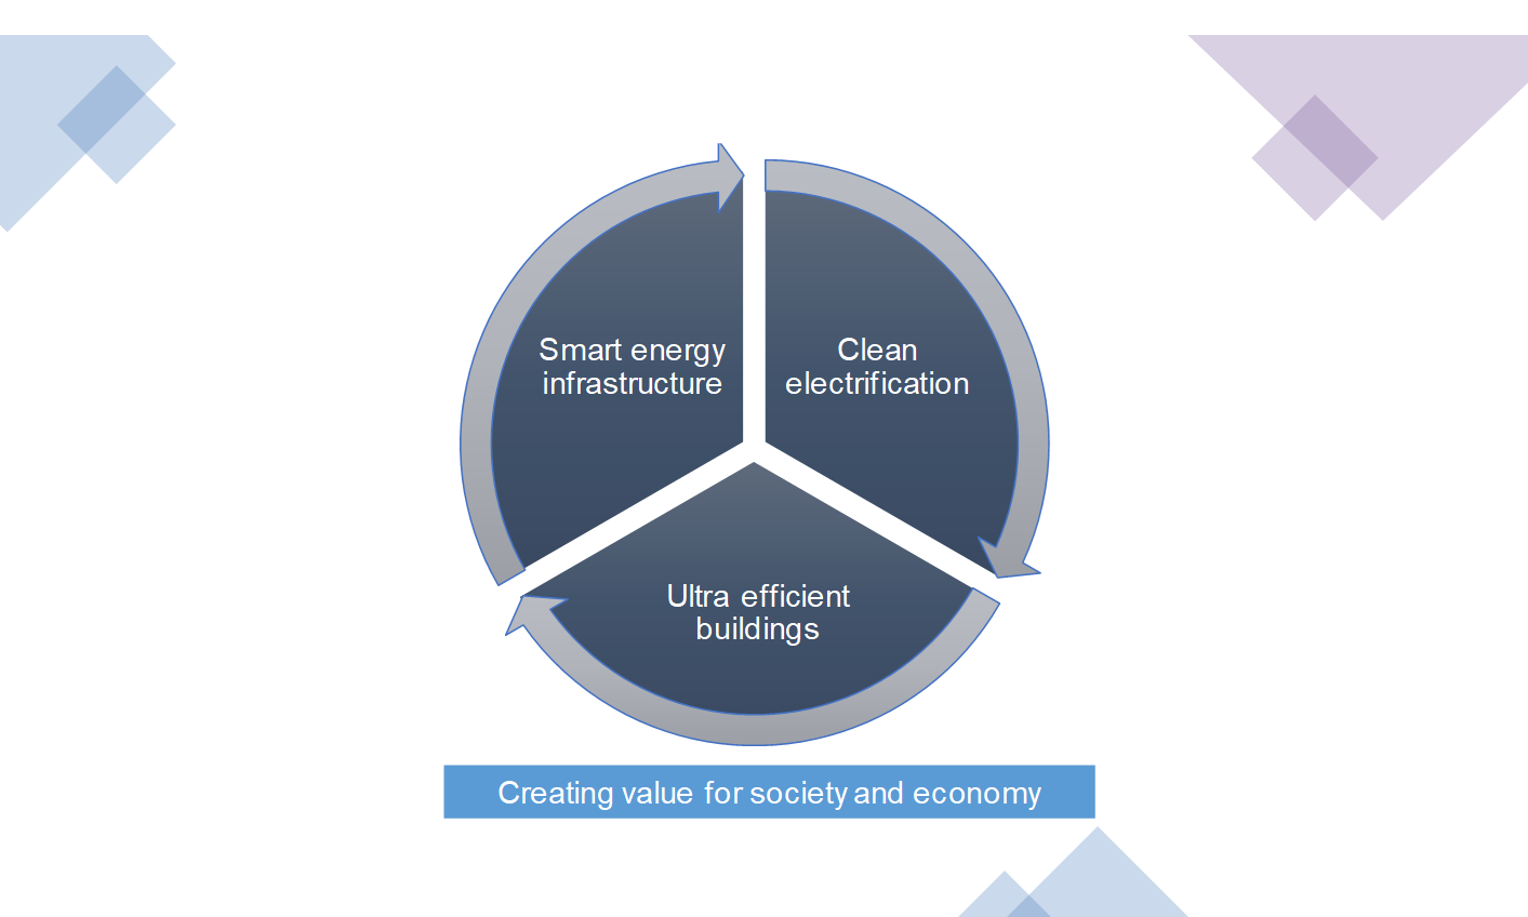 The integrated approach would dramatically accelerate efforts to decarbonize cities